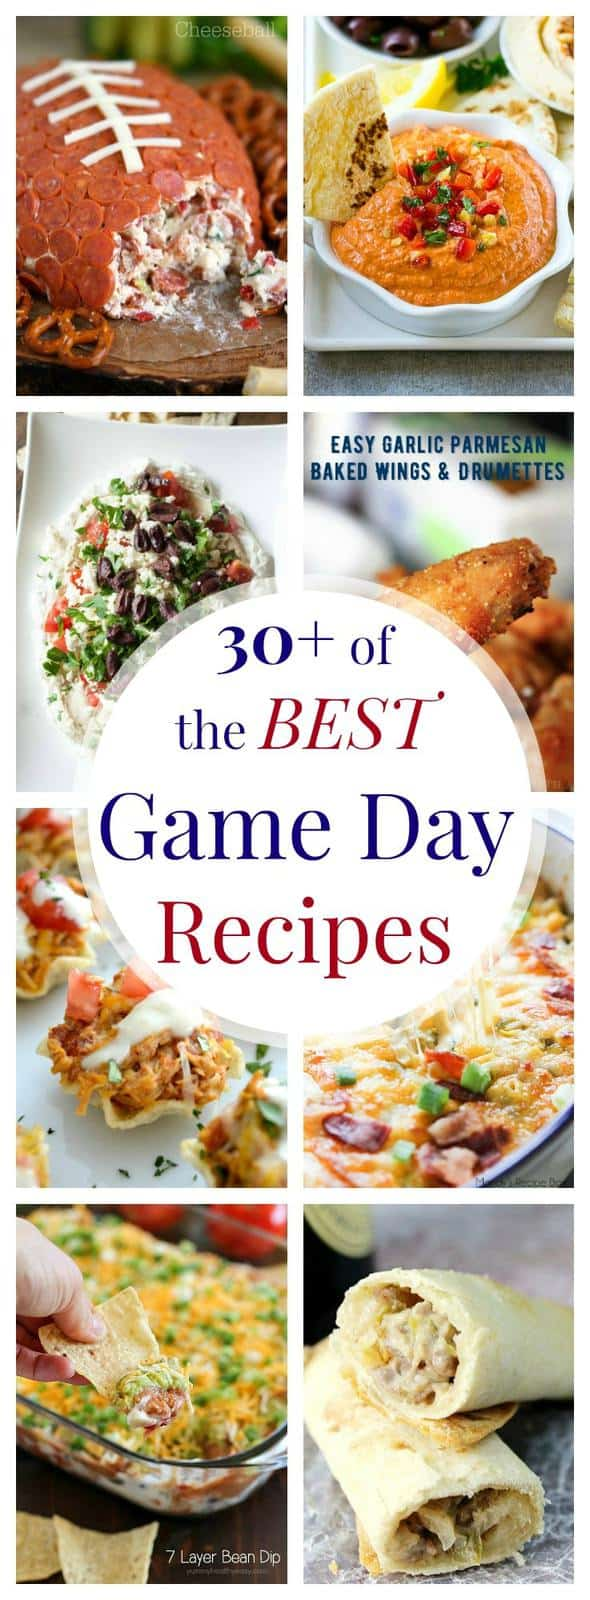 The Best Game Day Recipes - dips, wings, nachos and more for your big game party menu!